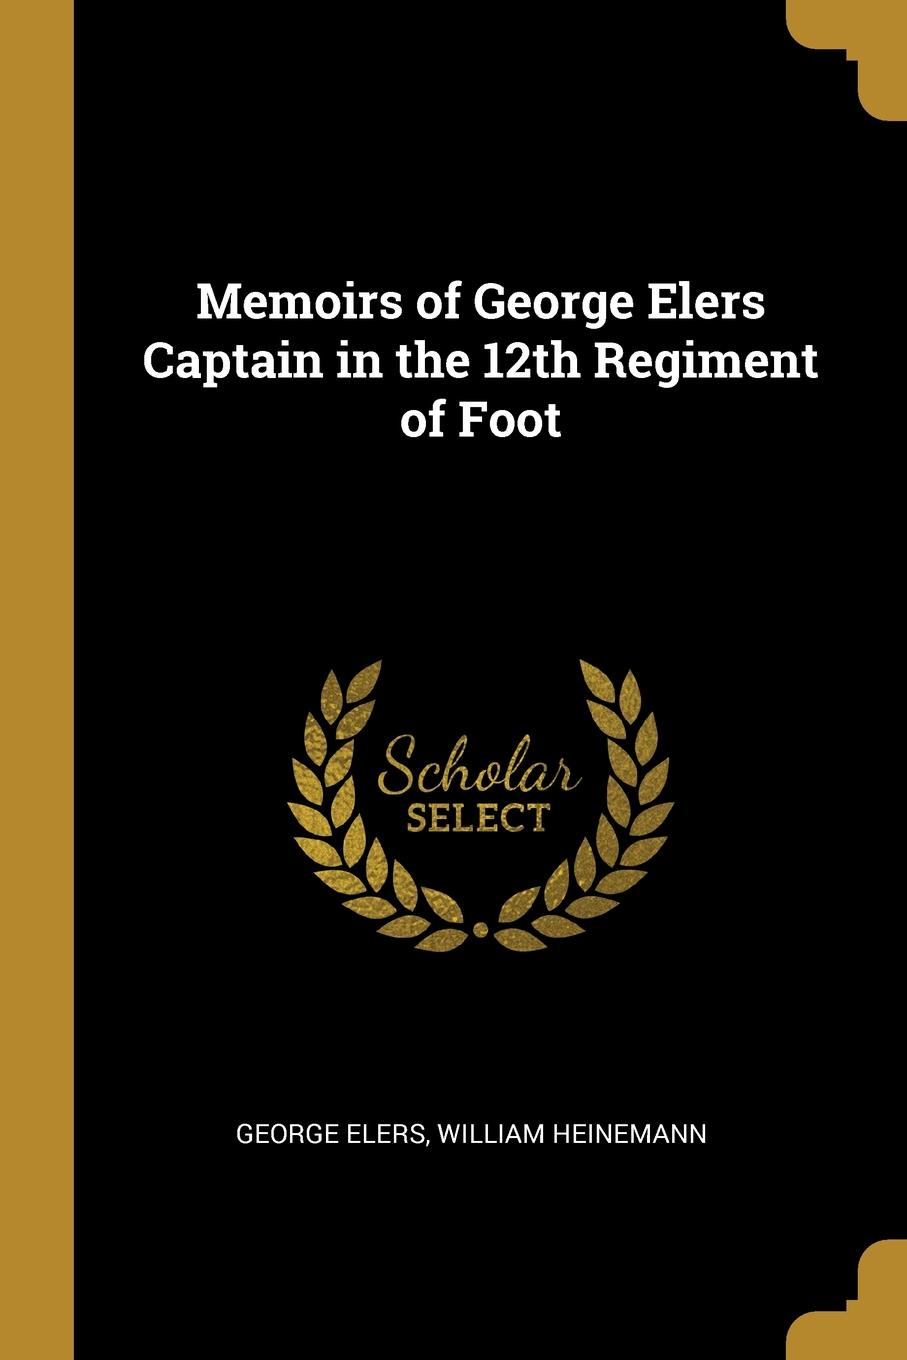 George Elers Memoirs of George Elers Captain in the 12th Regiment of Foot elers george memoirs of george elers captain in the 12th regiment of foot 1777 1842 to which are added correspondence and other papers with genealogy and notes